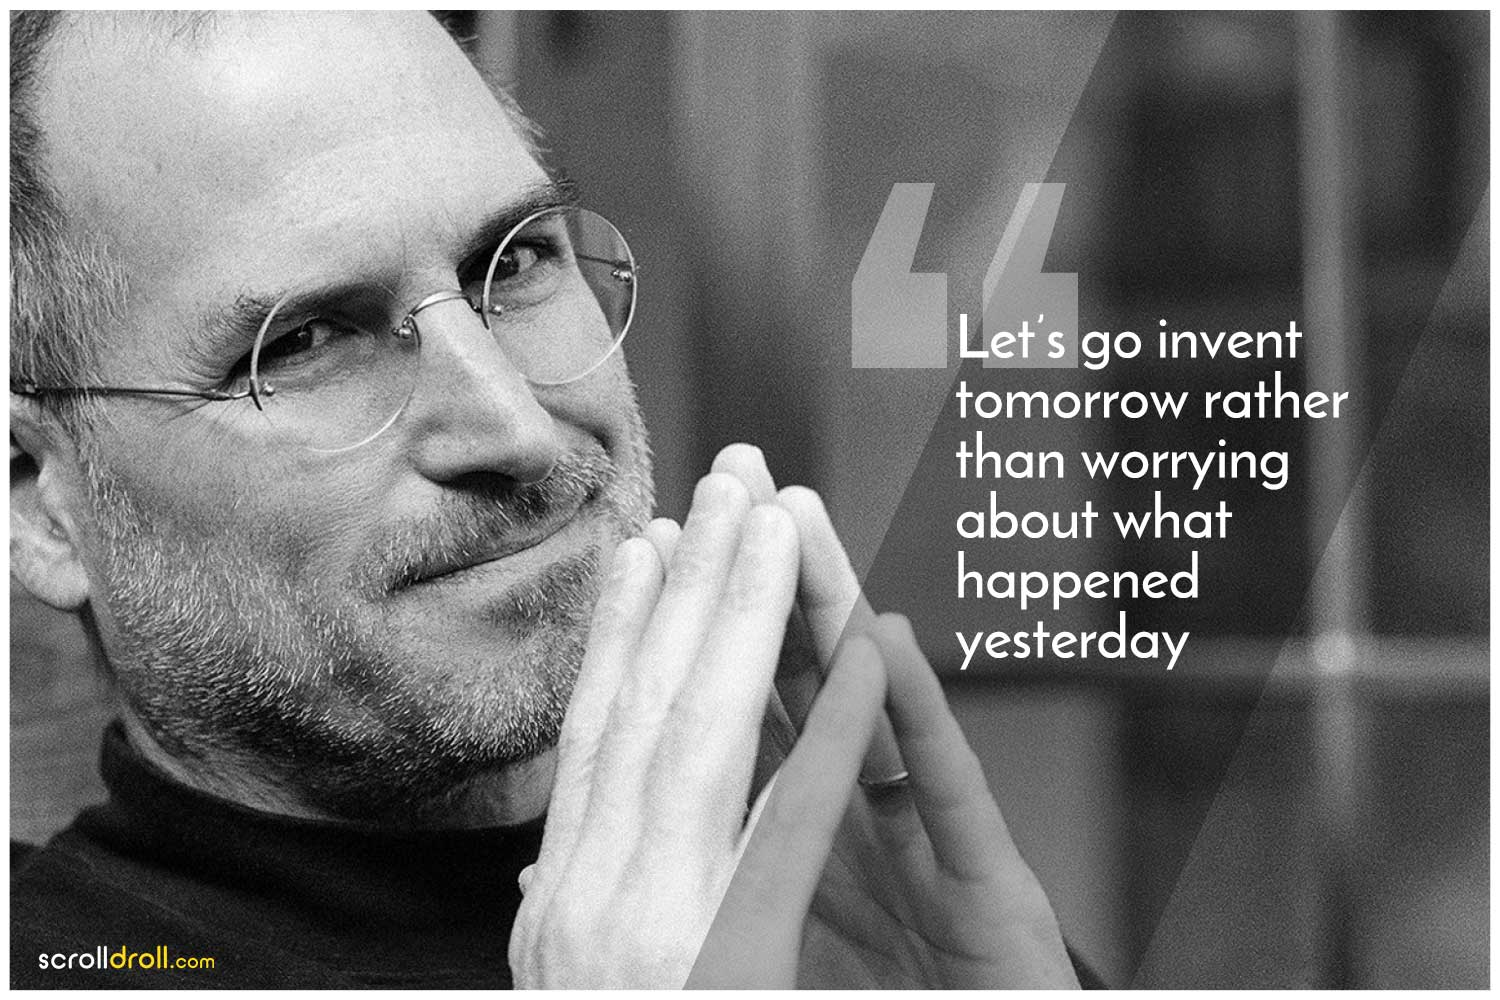 -Steve Jobs Quotes-Let's go invent tomorrow rather than worrying about what happened yesterday